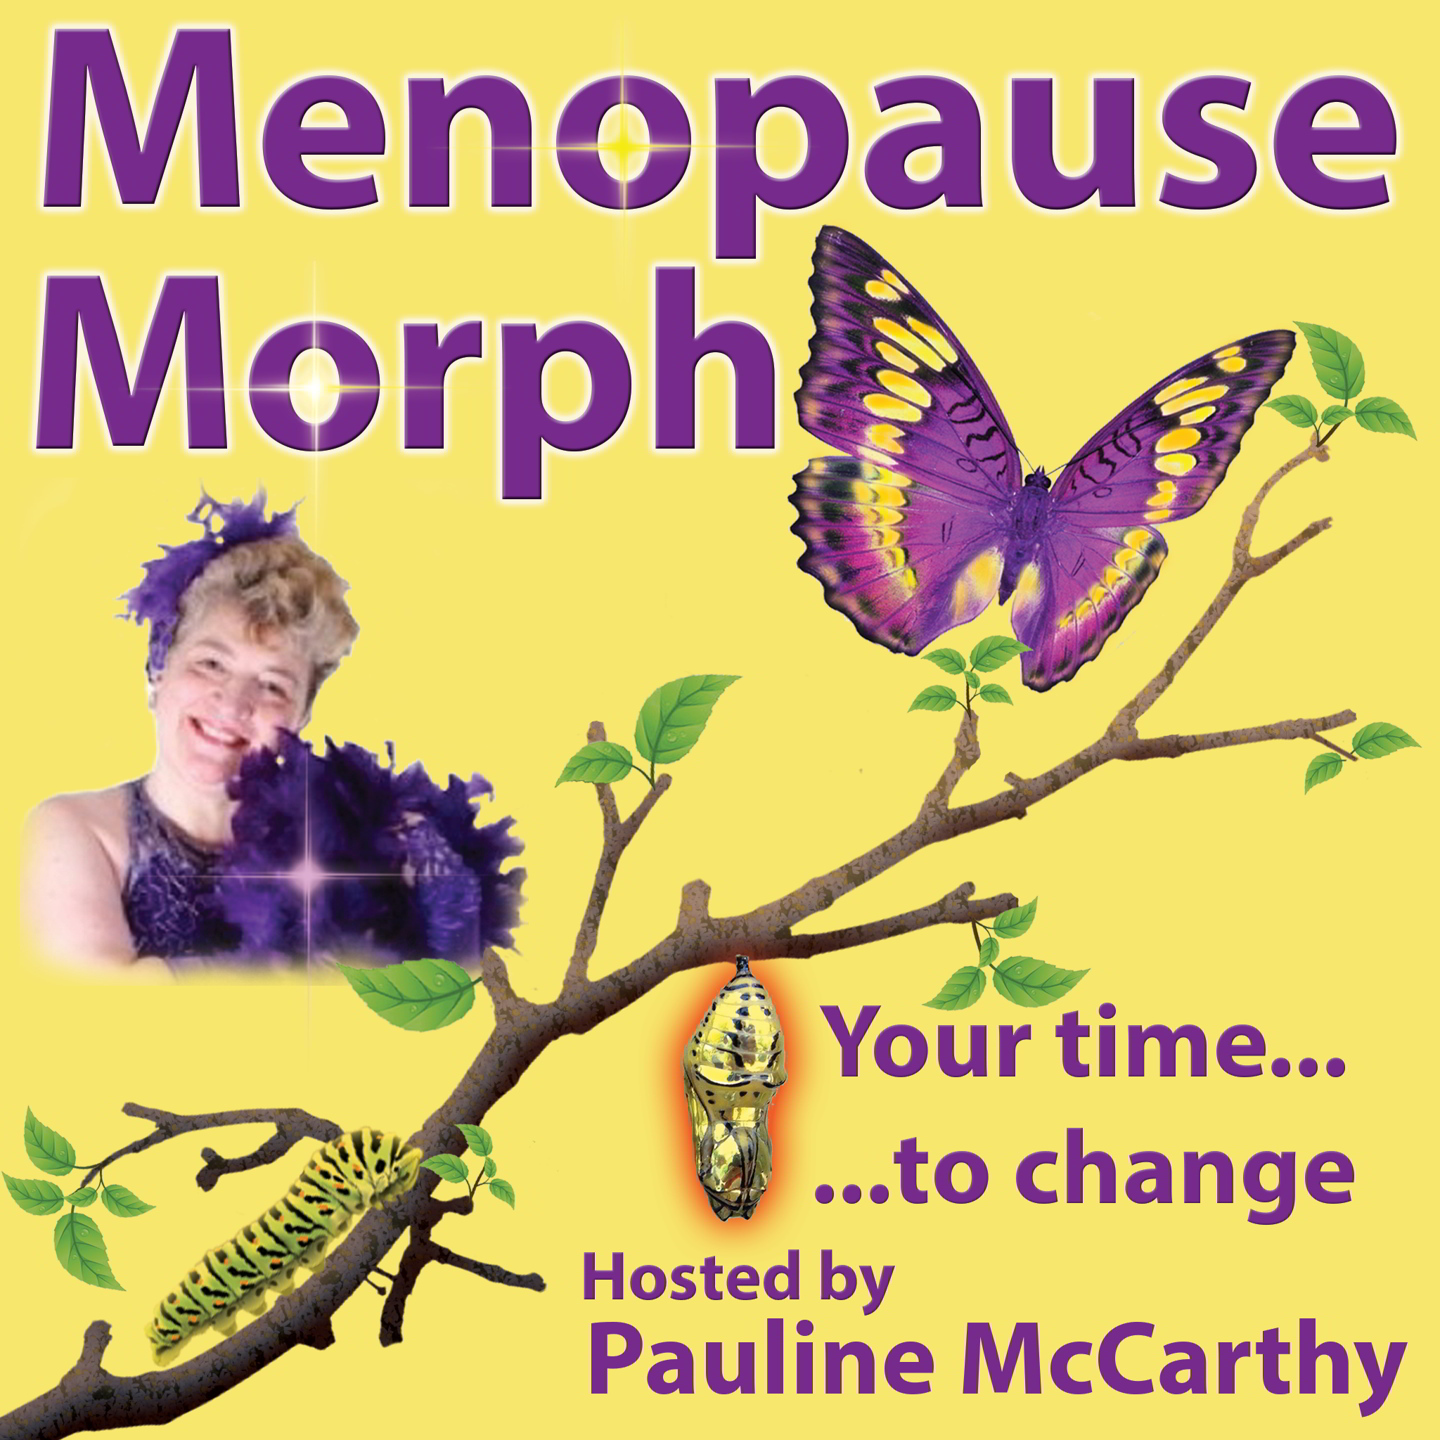 0047 Unusual Menopause Symptom – Tingling in Extremities